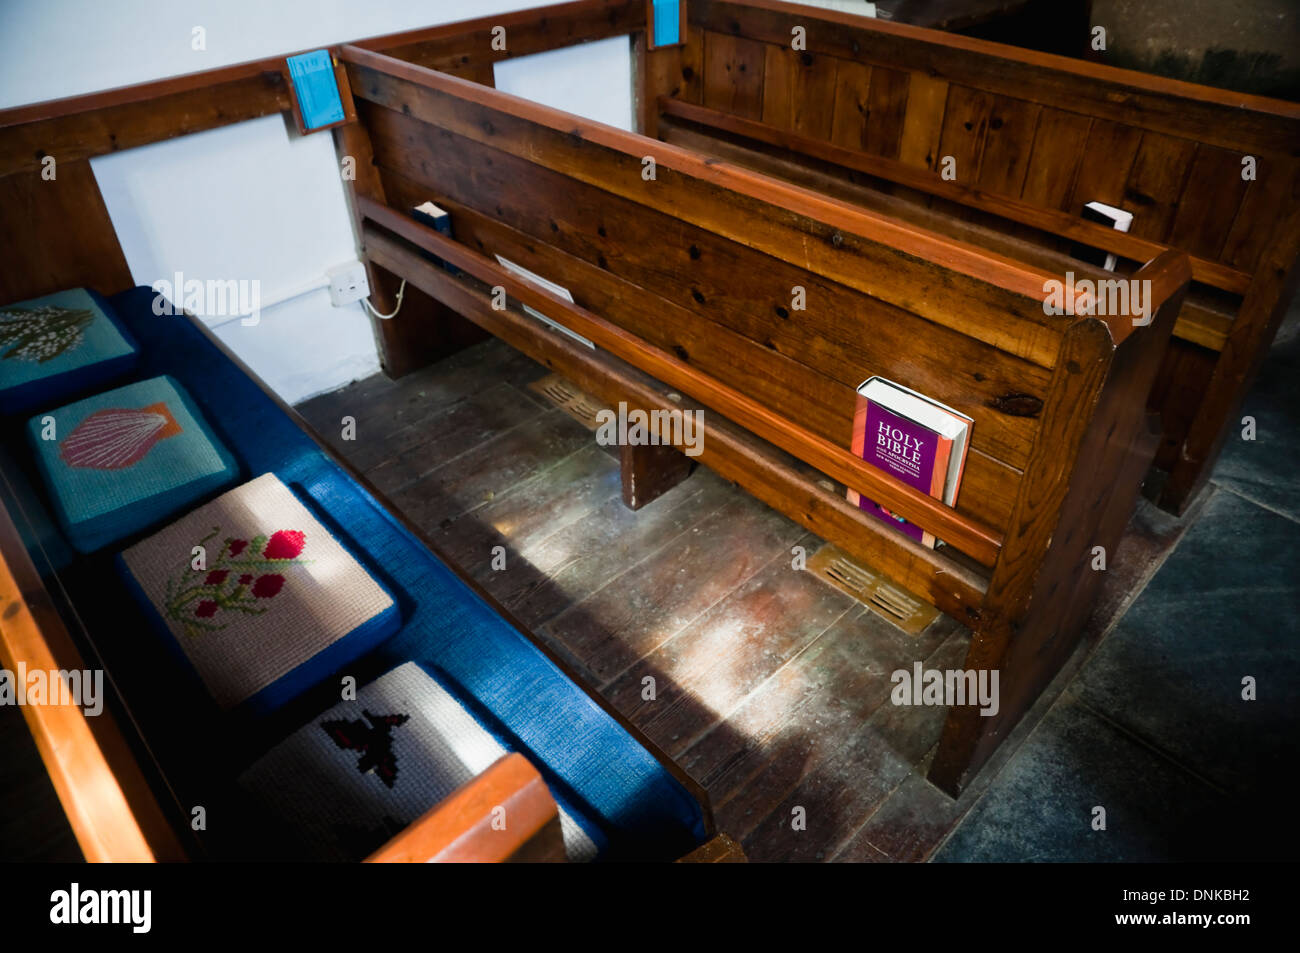 Church Pews with kneelers and Bible in an English Country Church. UK. Stock Photo